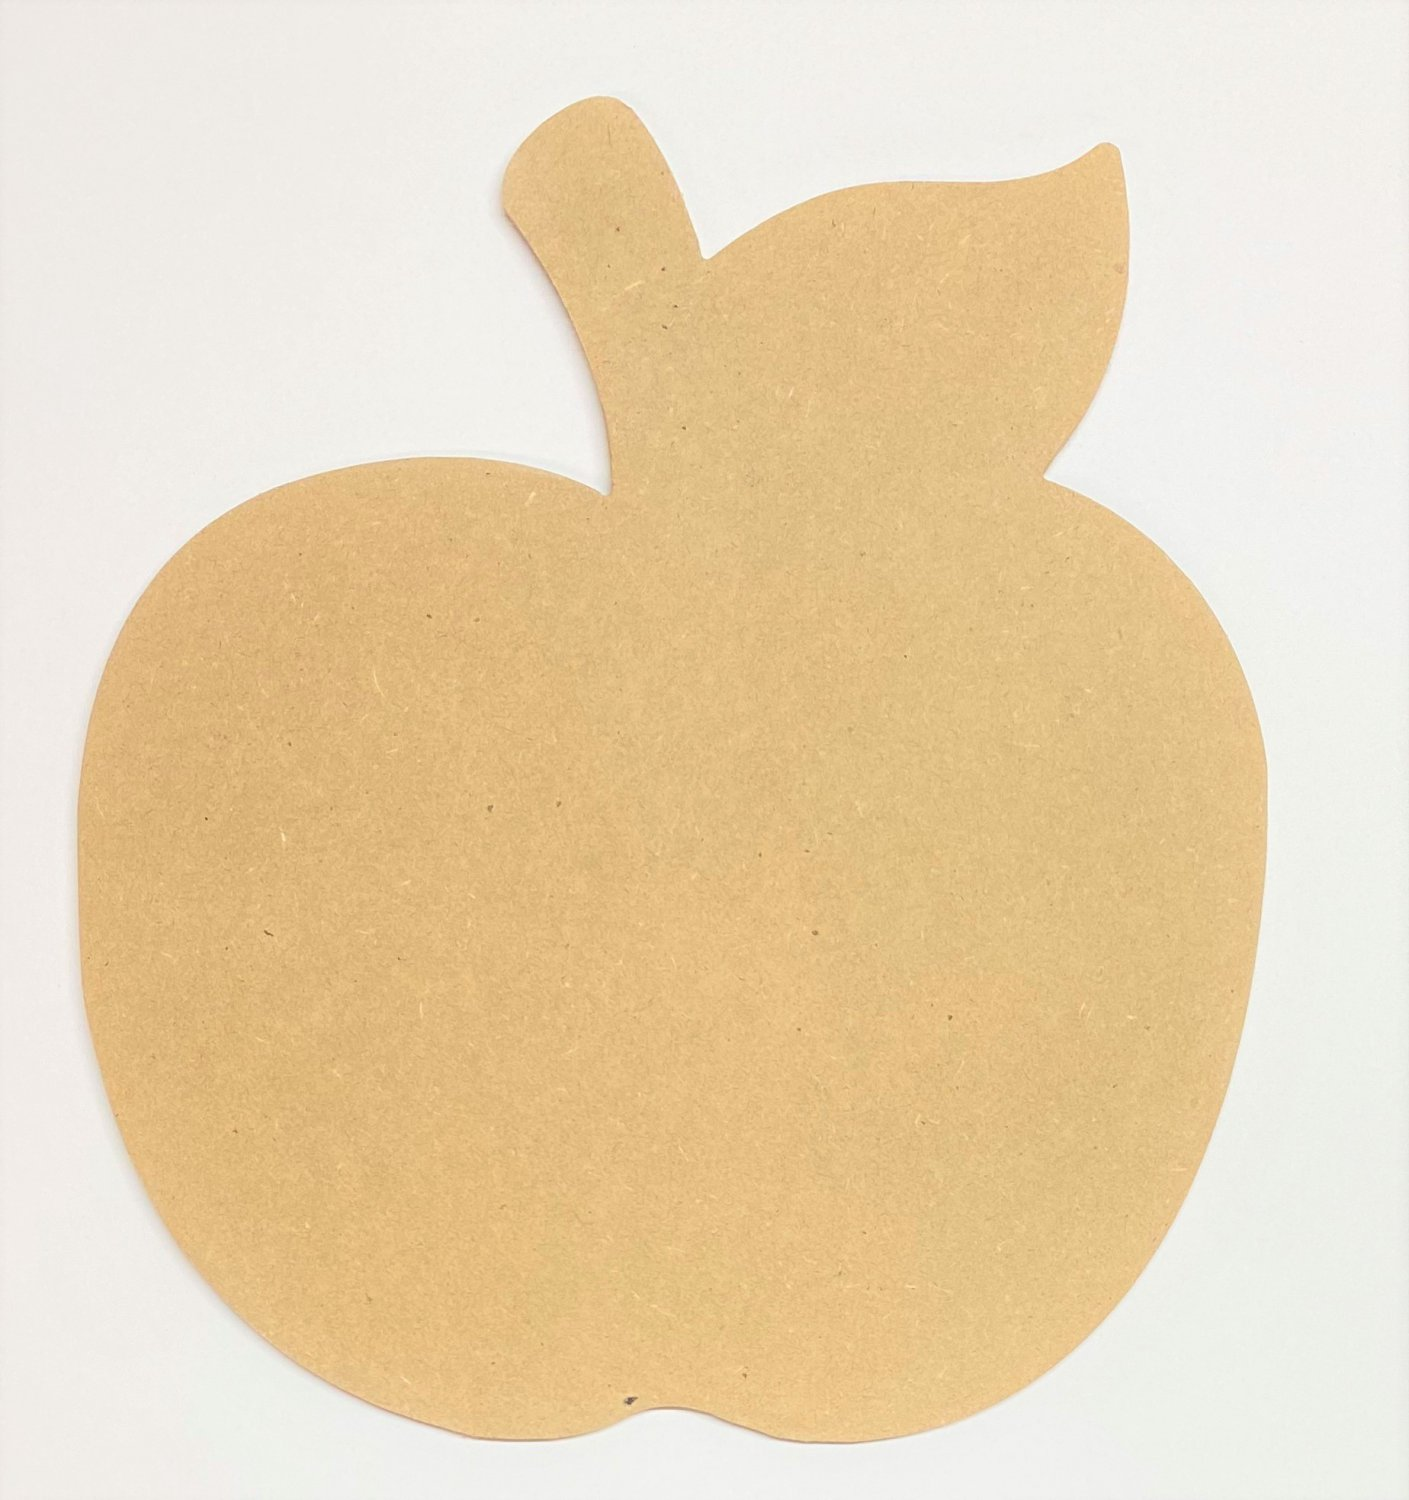 """6"""" - Apple - 1/4""""Thick MDF Cut Out Made in the USA"""